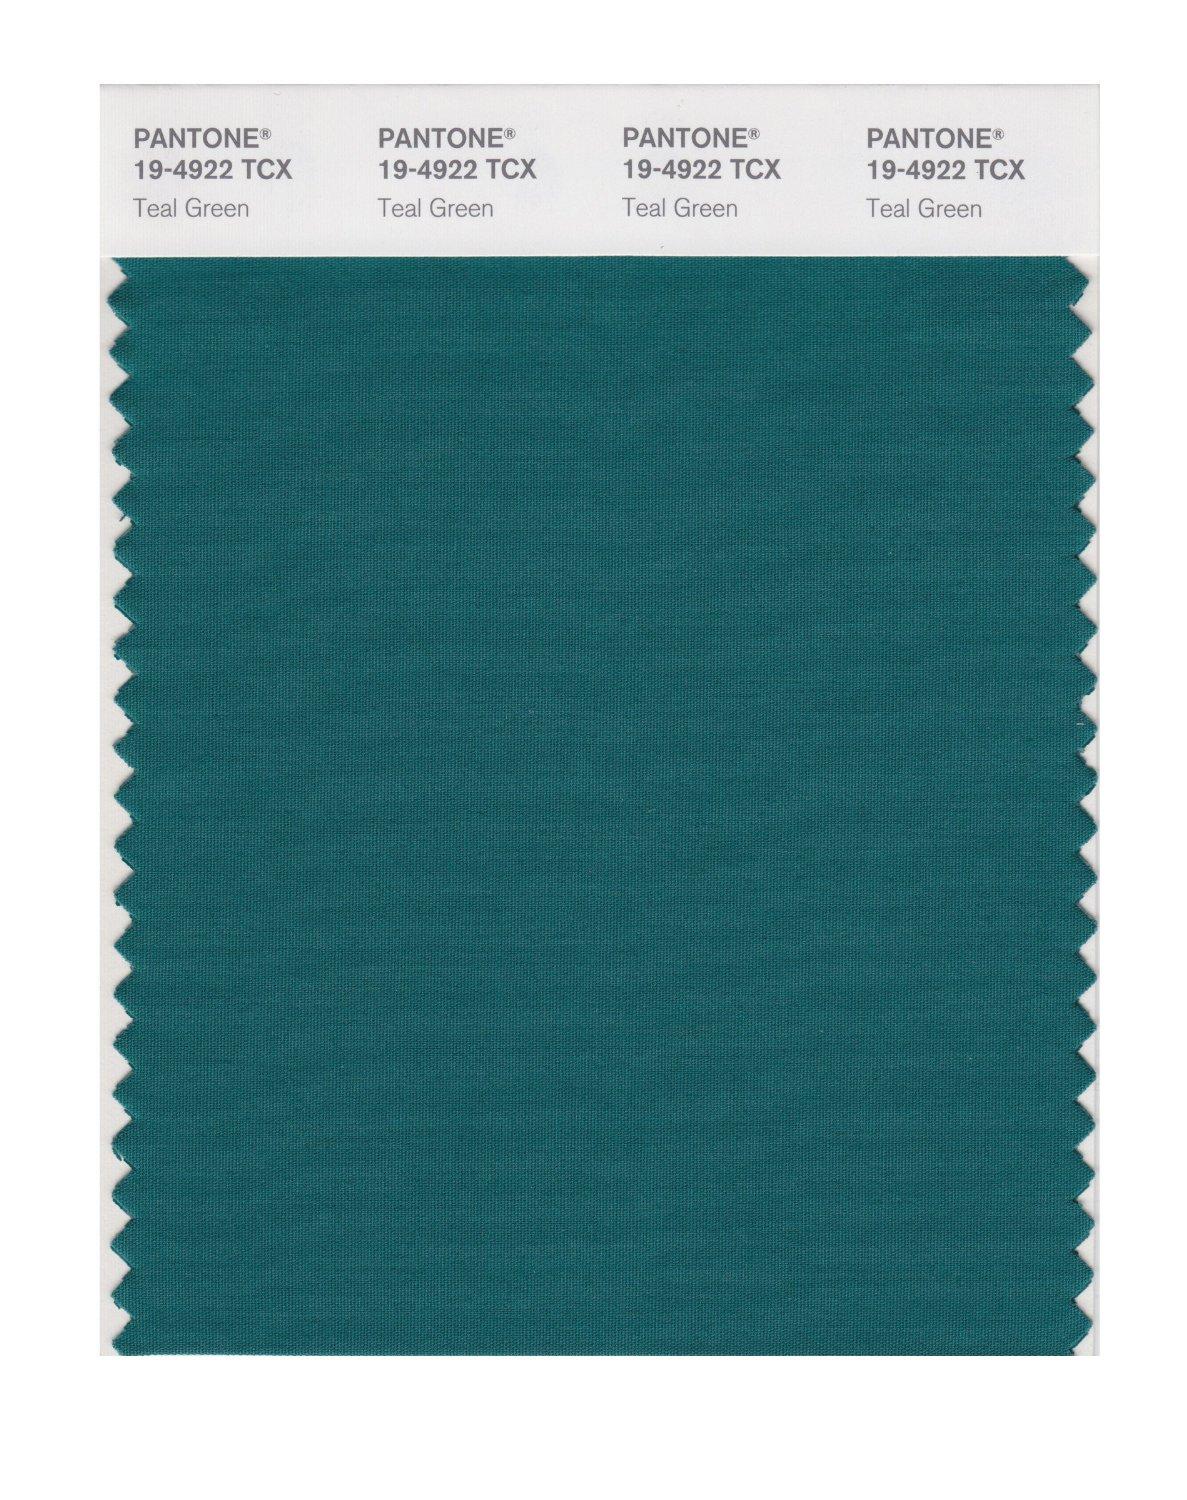 Pantone Smart Swatch 19-4922 Teal Green